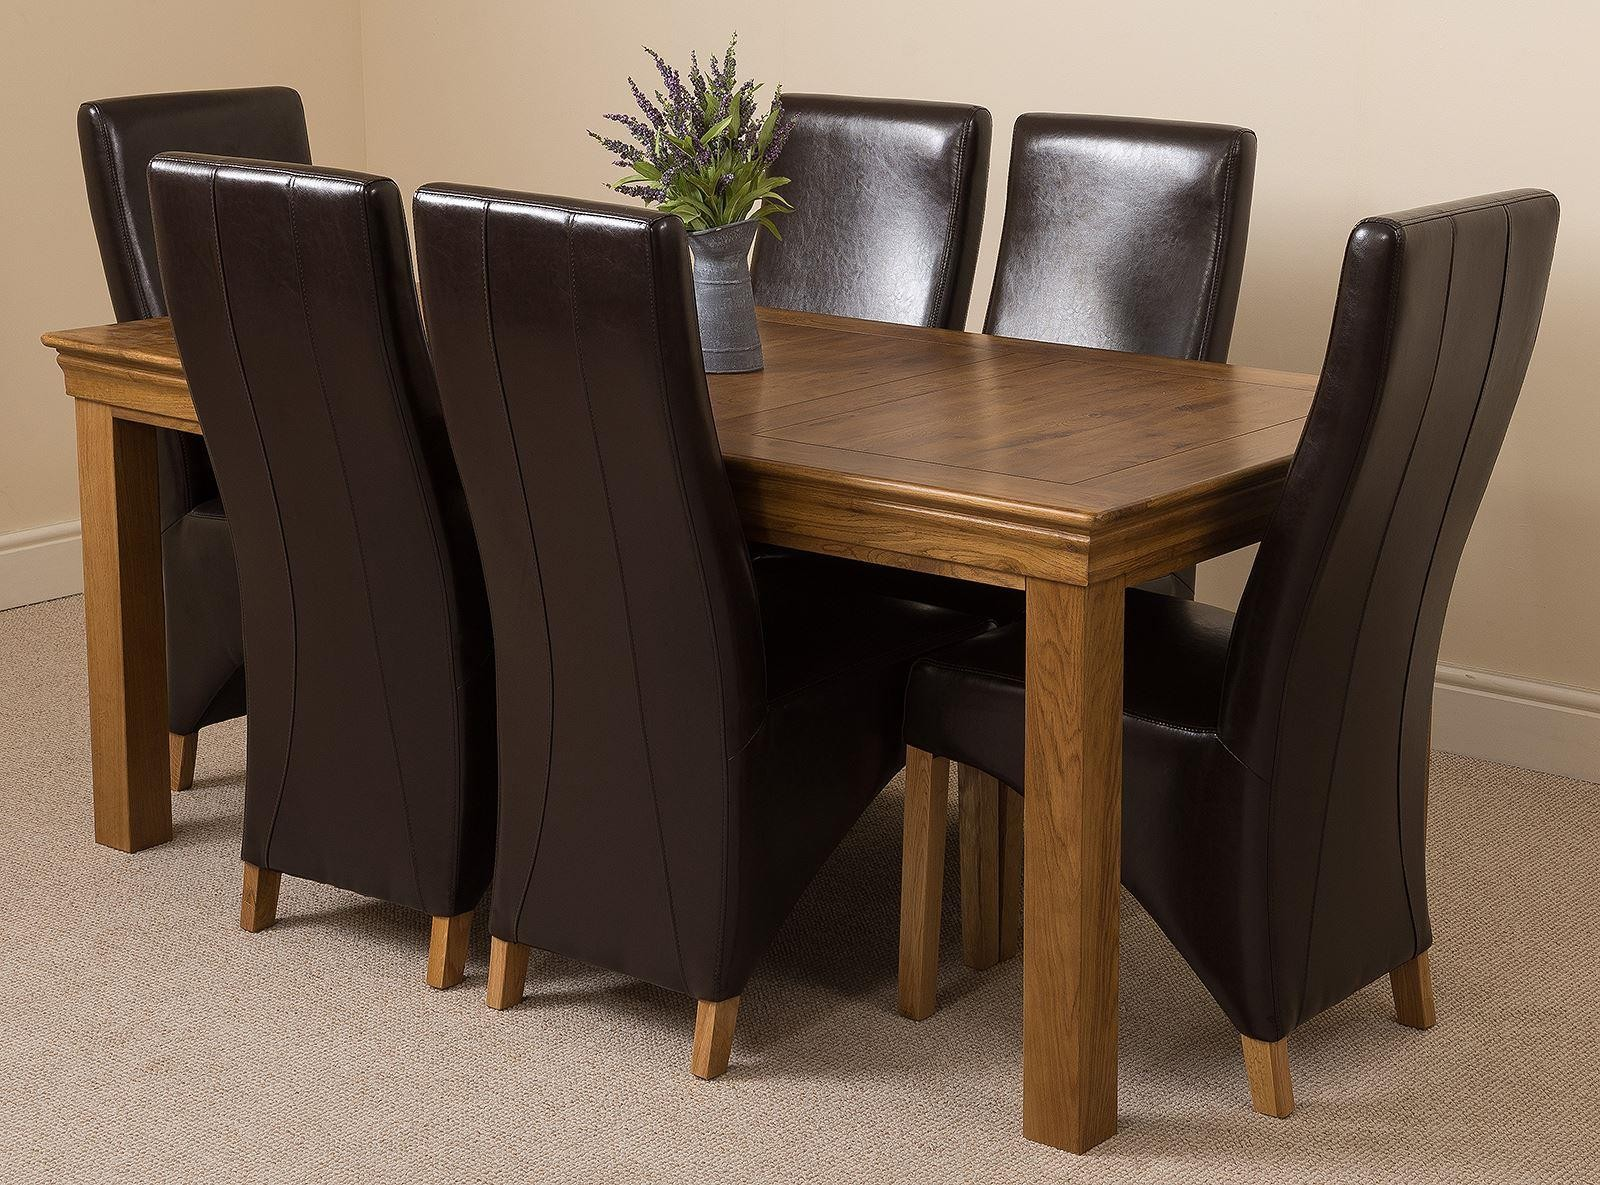 French Chateau Rustic Solid Oak 180cm Dining Table with 6 Lola Dining Chairs [Brown Leather]